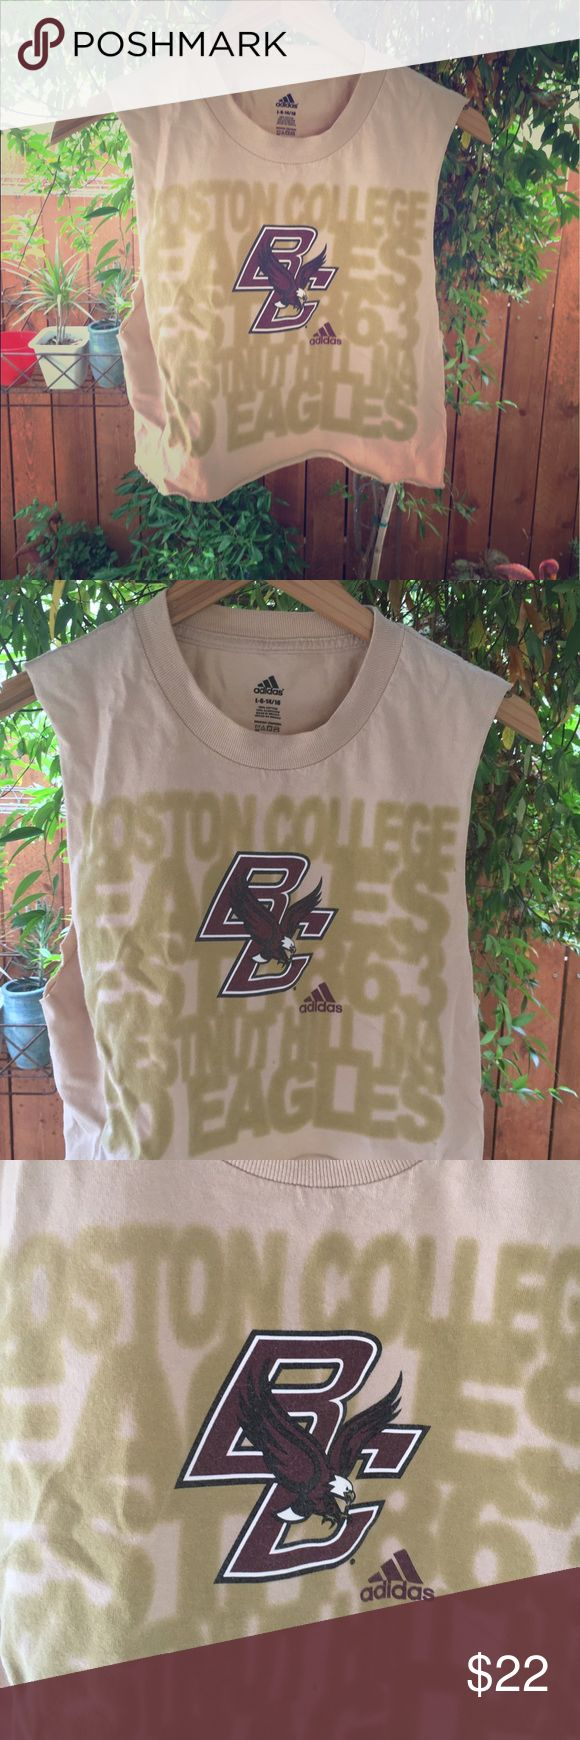 Women's XS cropped tank top Boston College We alter this children's t shirt fits perfect as an extra small or small women's tank Vintage Tops Crop Tops